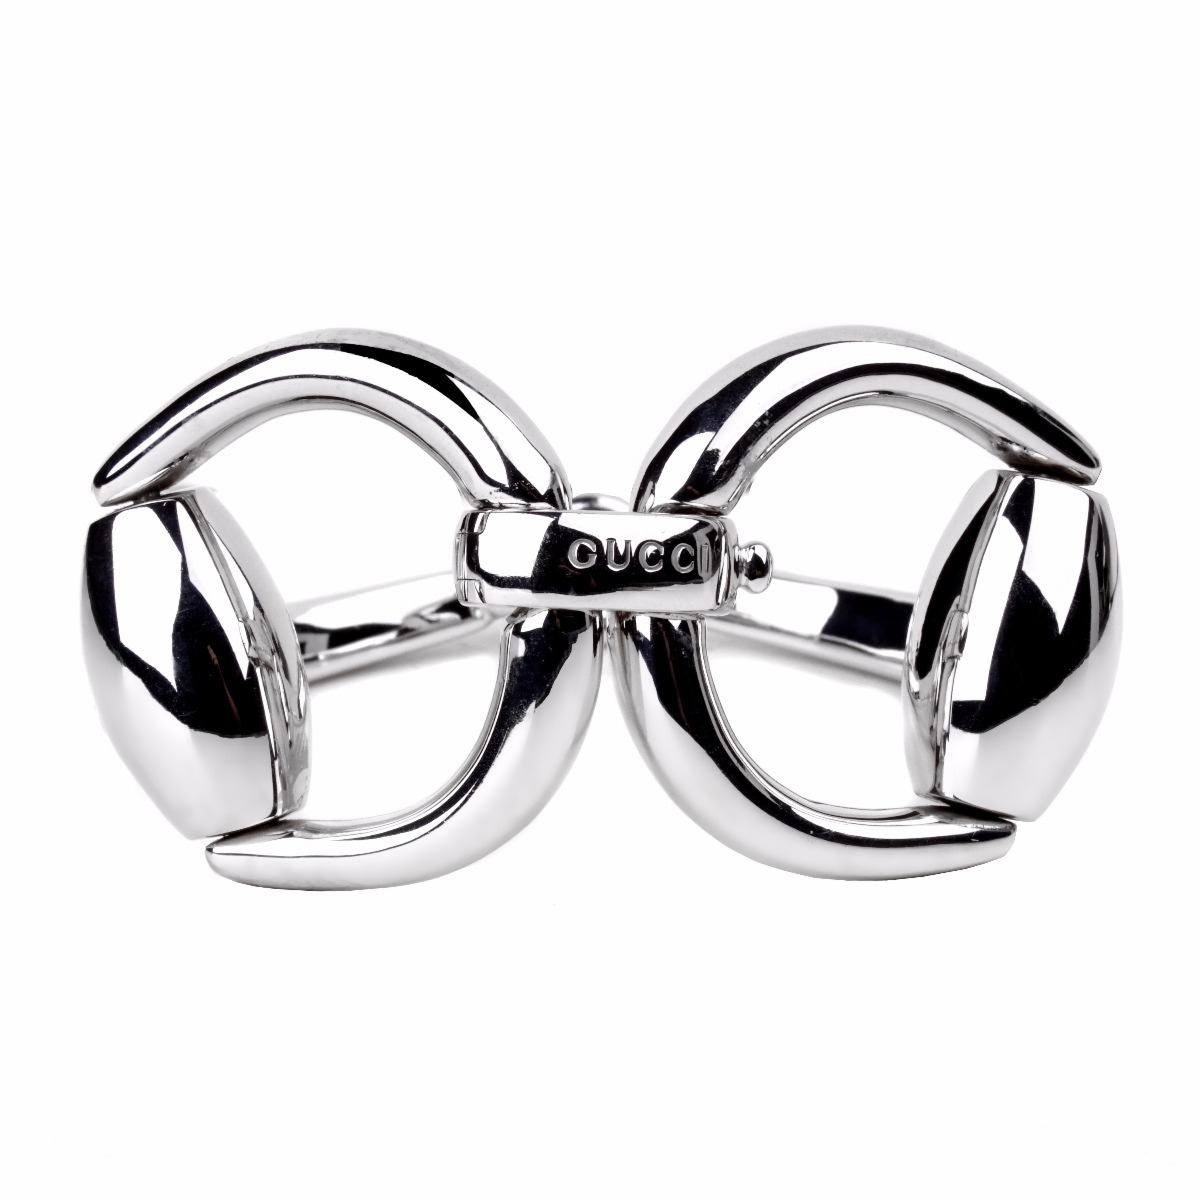 Gucci Horsebit Silver Bangle Bracelet - Gucci Jewelry